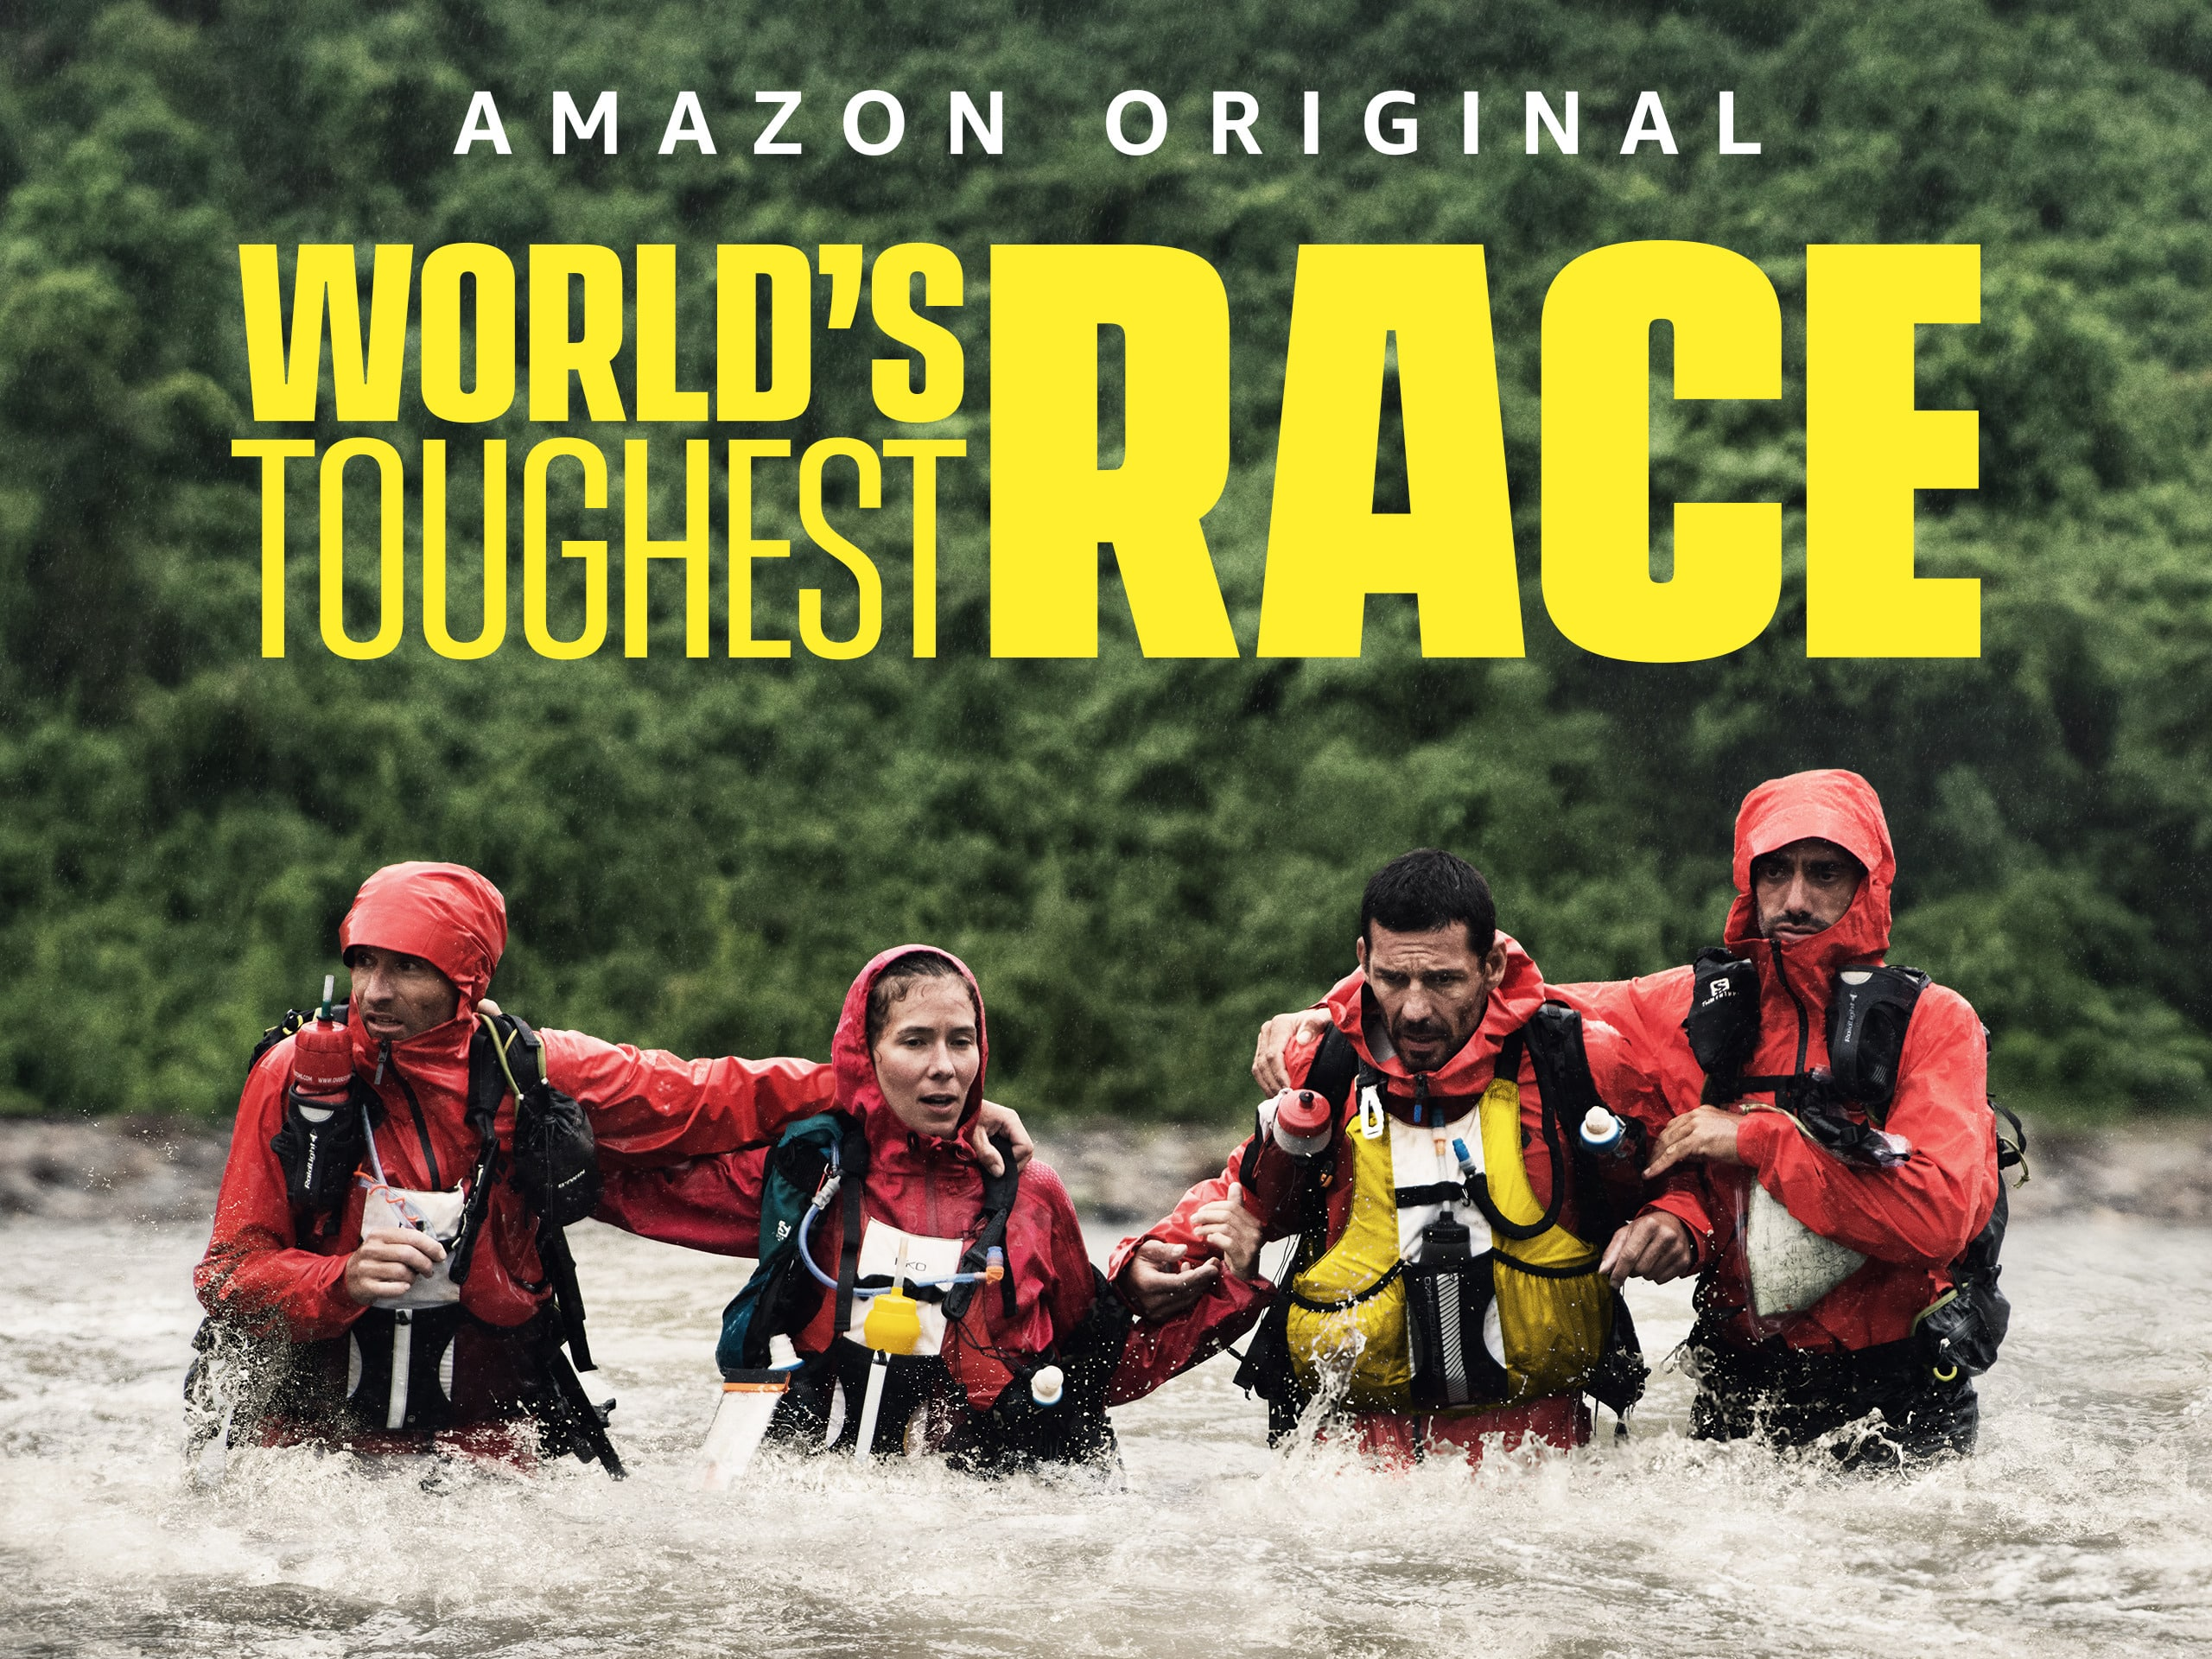 Amazon Prime Video World's Toughest Race: Eco-Challenge Fiji, mixed tale of physical challenge and real battles.